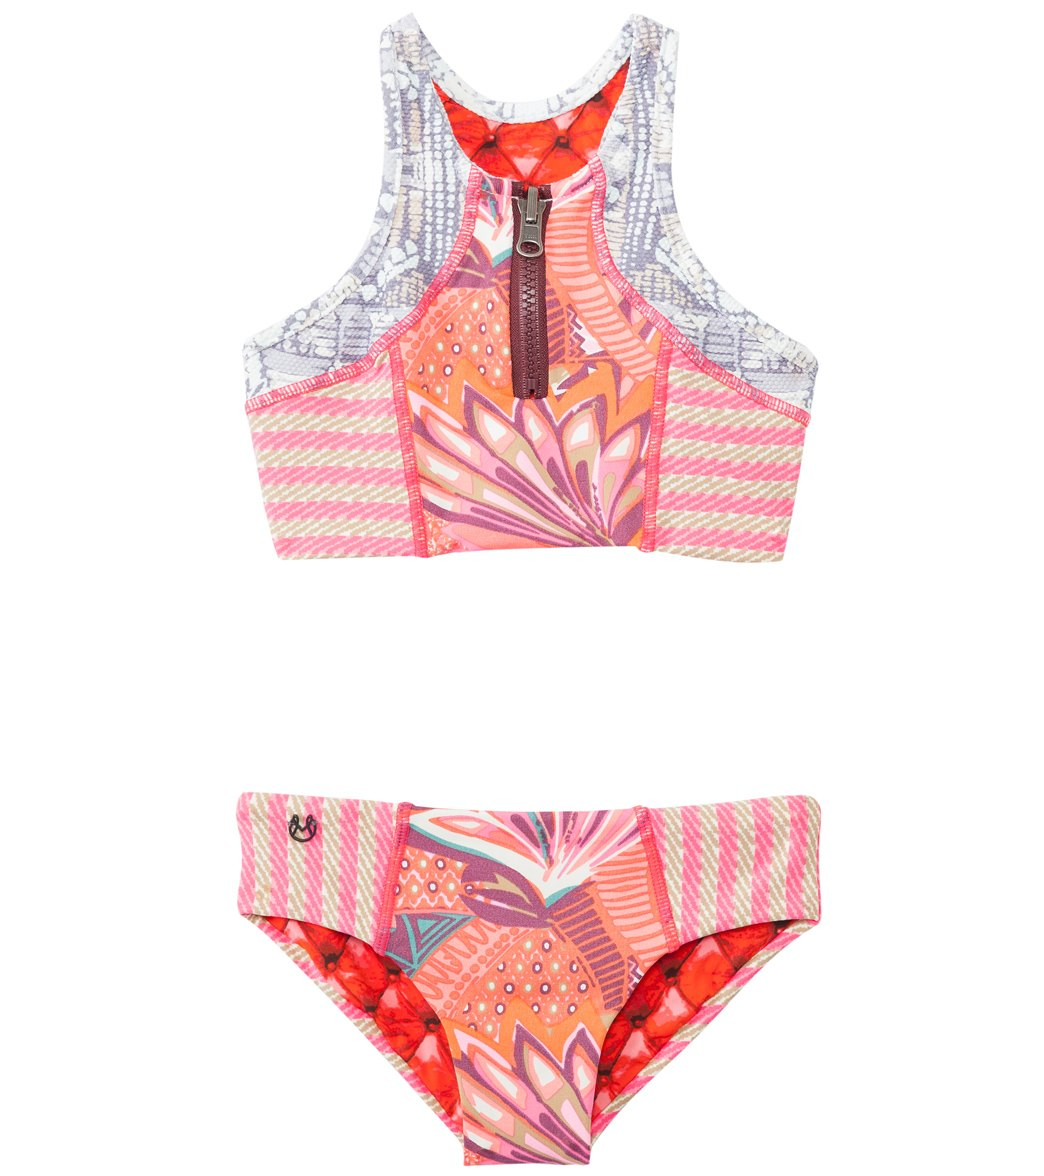 7a37e47a47316 Maaji Girls' Cinnamon Surfer High Neck Two Piece (2T-16) at SwimOutlet.com  - Free Shipping